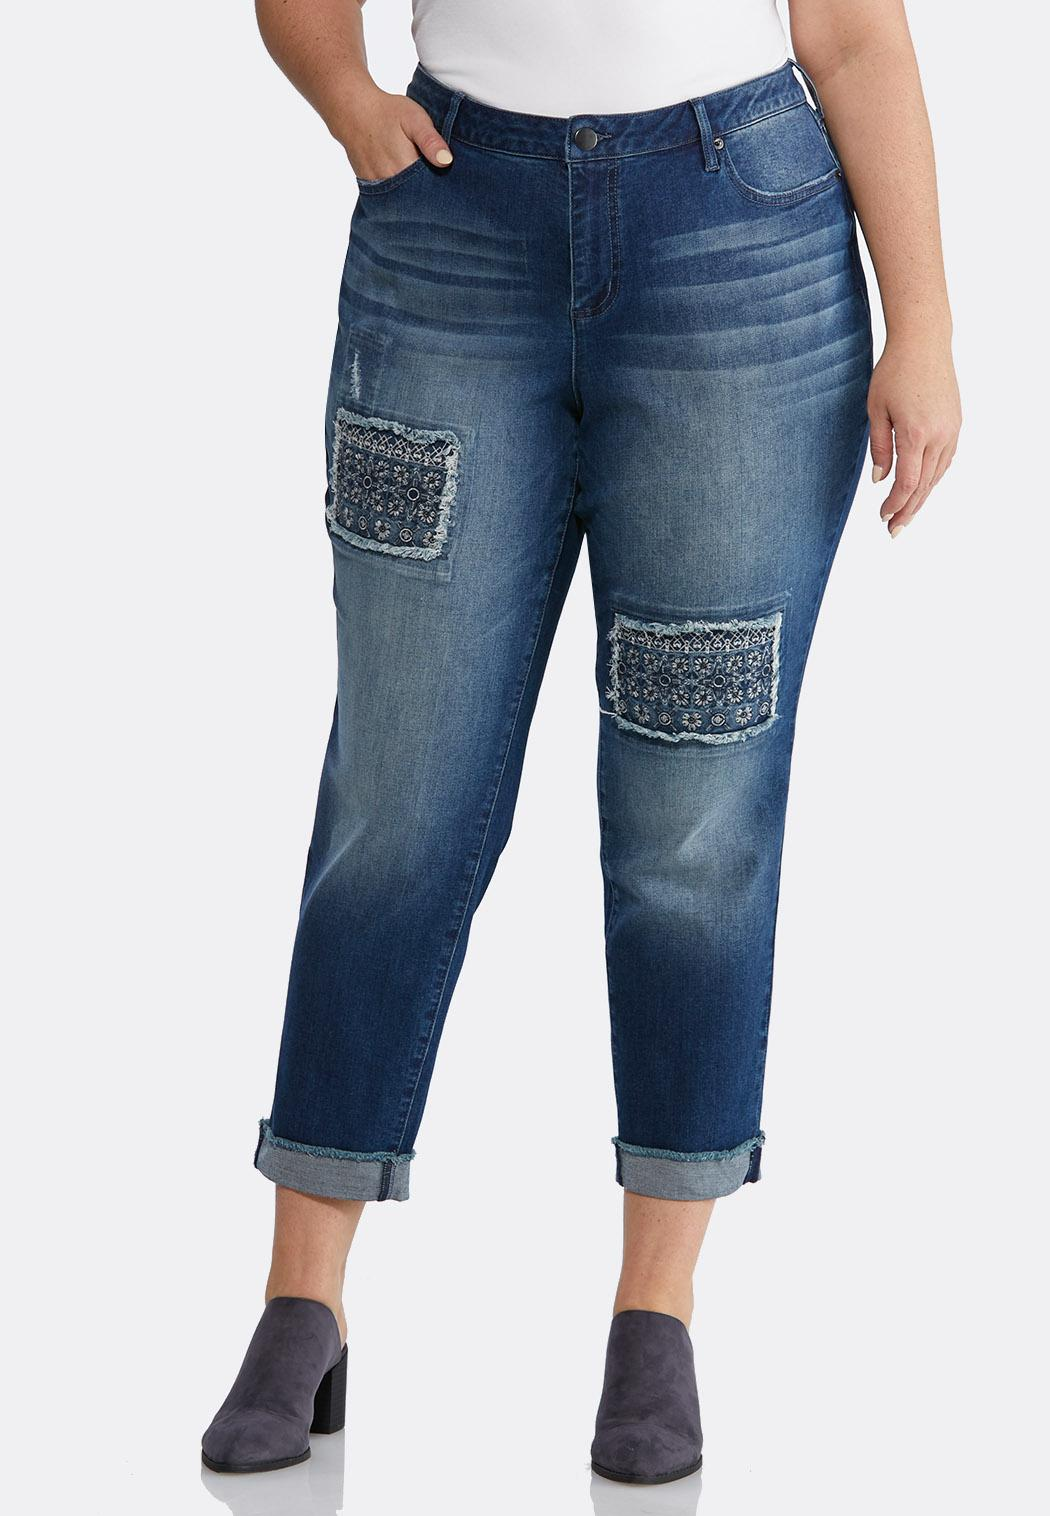 Plus Size Distressed Patchwork Ankle Jeans